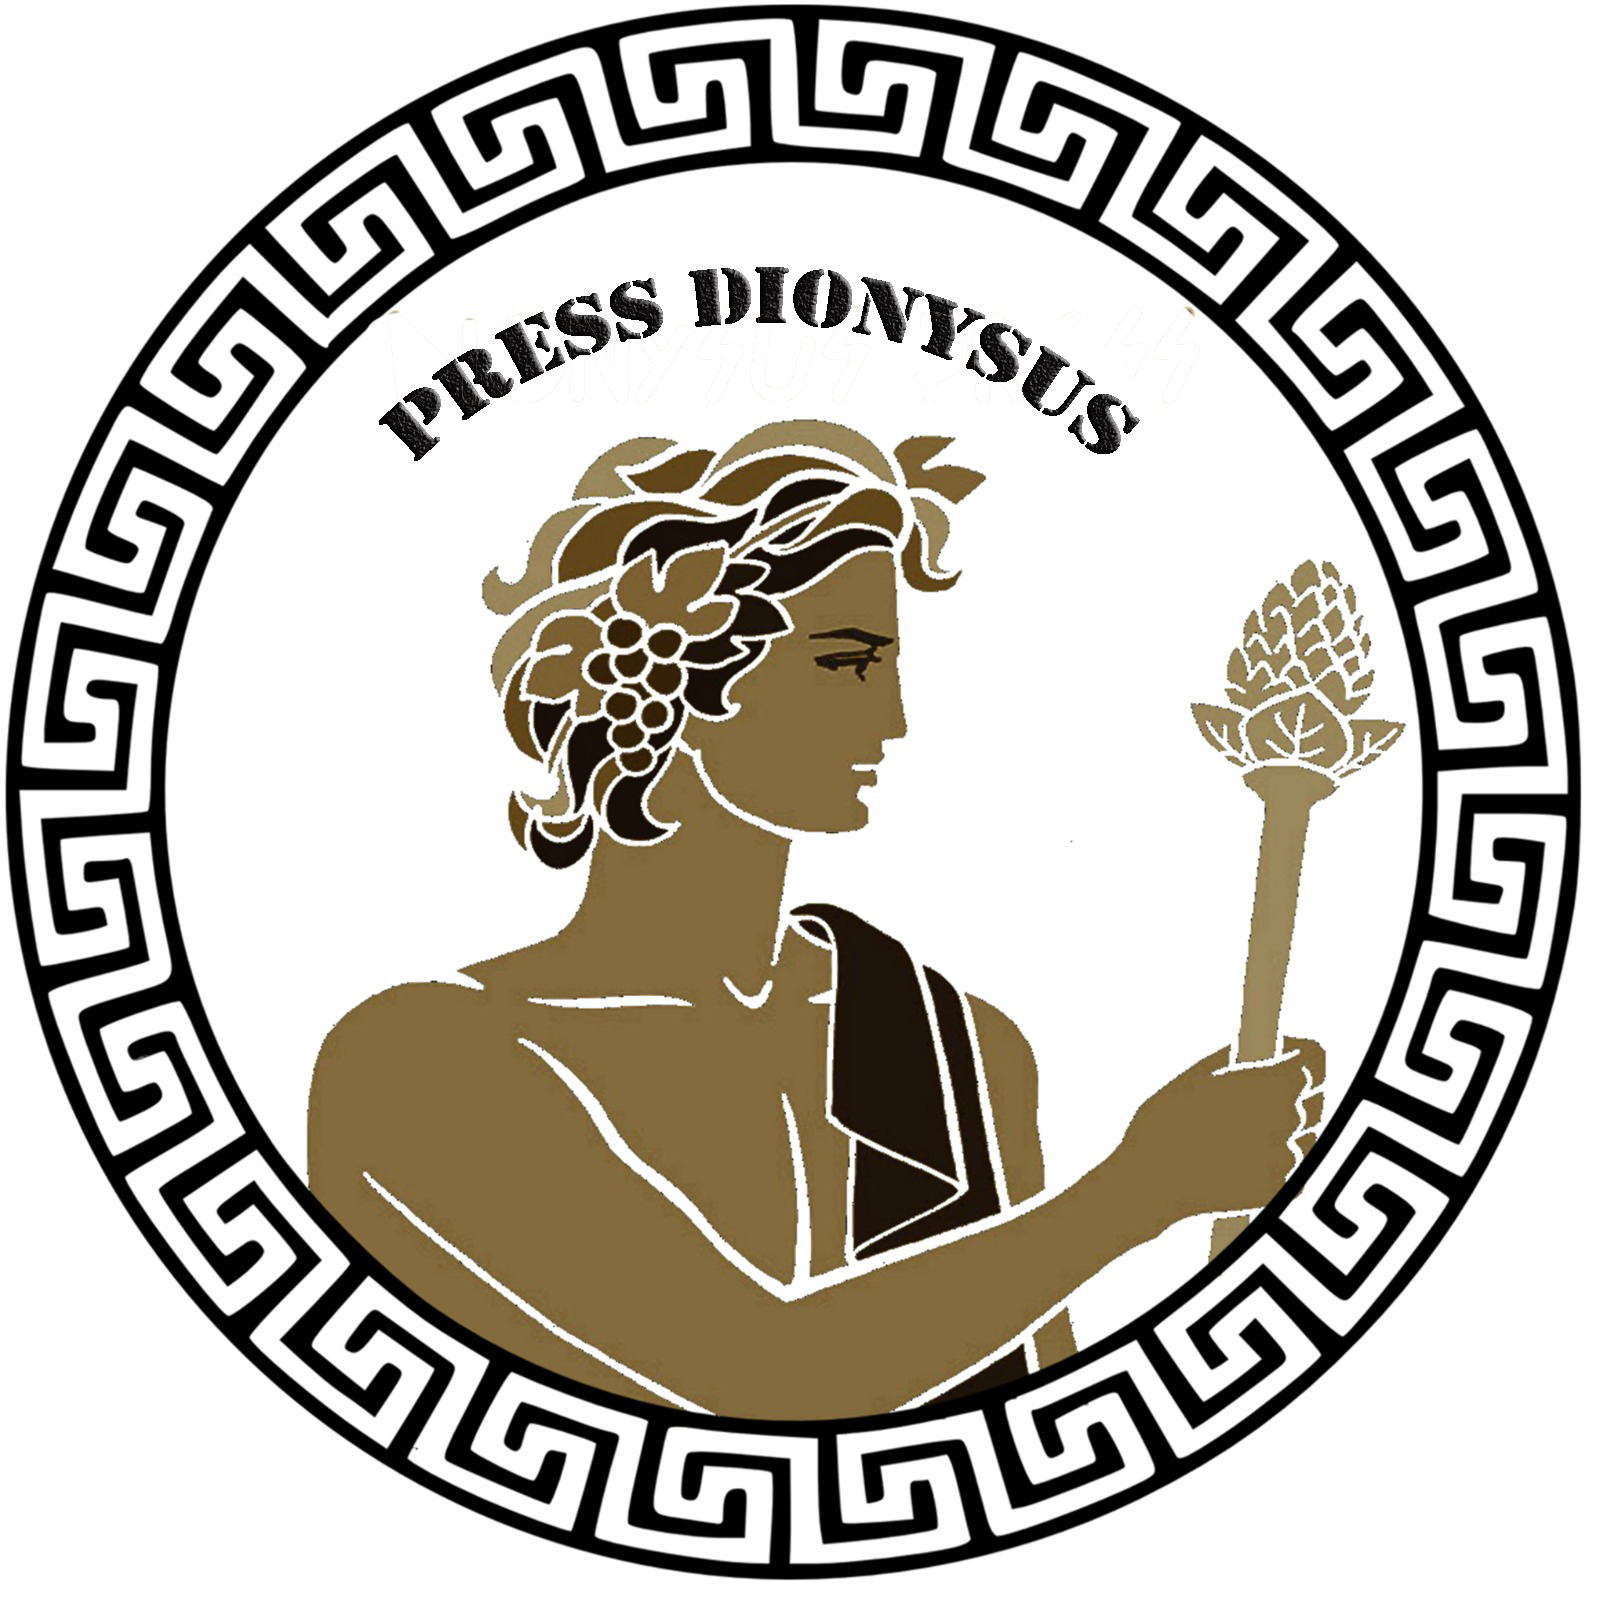 Press Dionysus